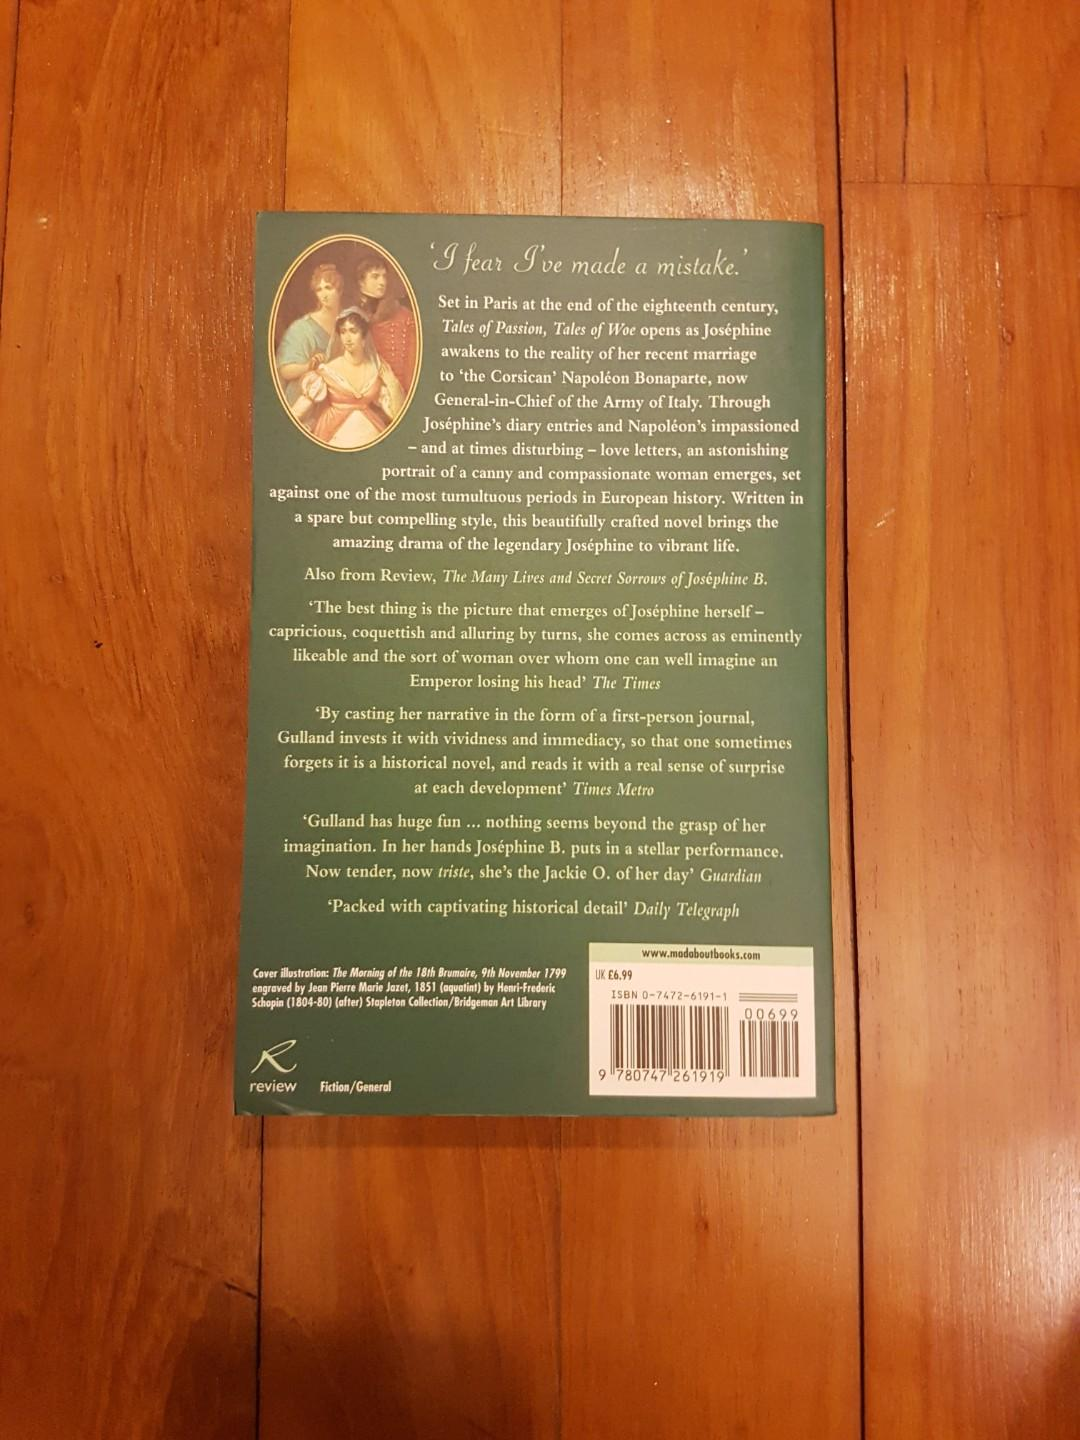 JOSEPHINE BONAPARTE: TALES OF PASSION, TALES OF WOE by SANDRA GULLAND [PAPERBACK]